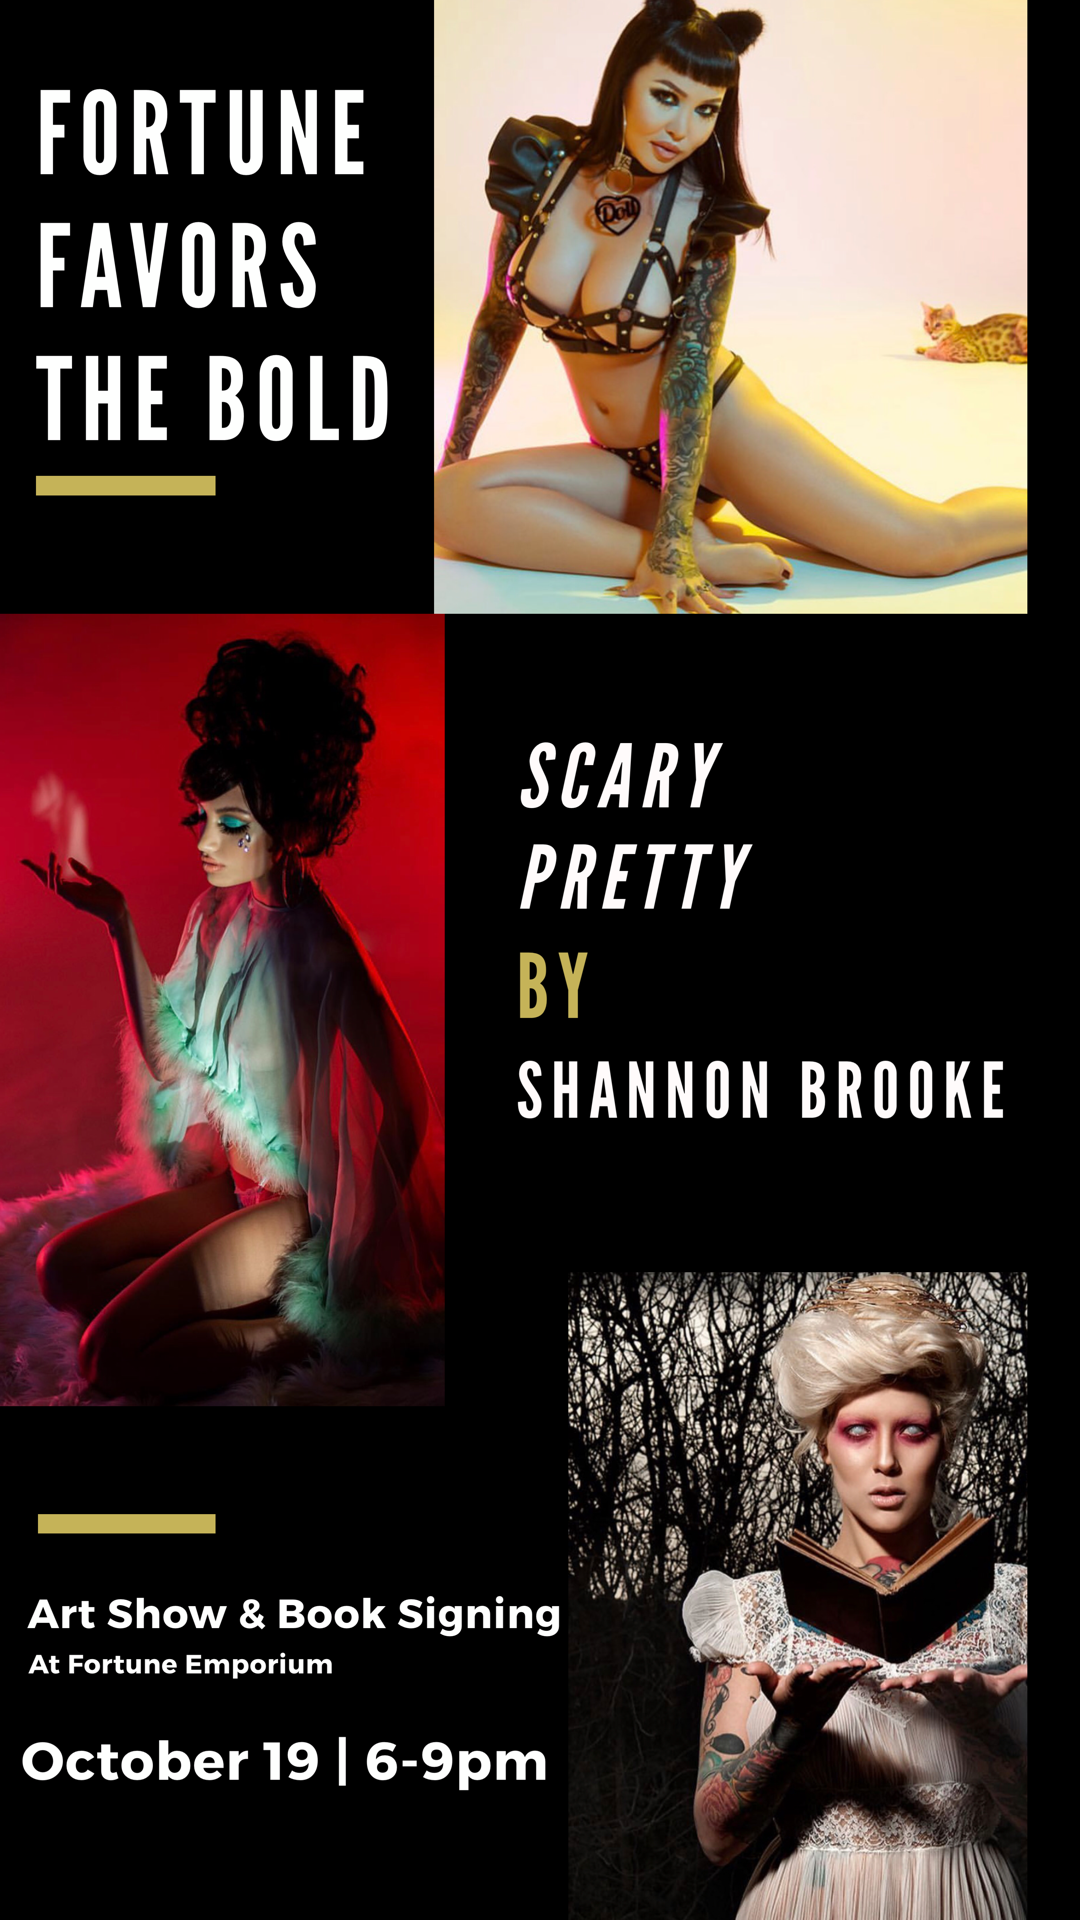 Fortune Favors The Bold: Scary Pretty featuring Shannon Brooke